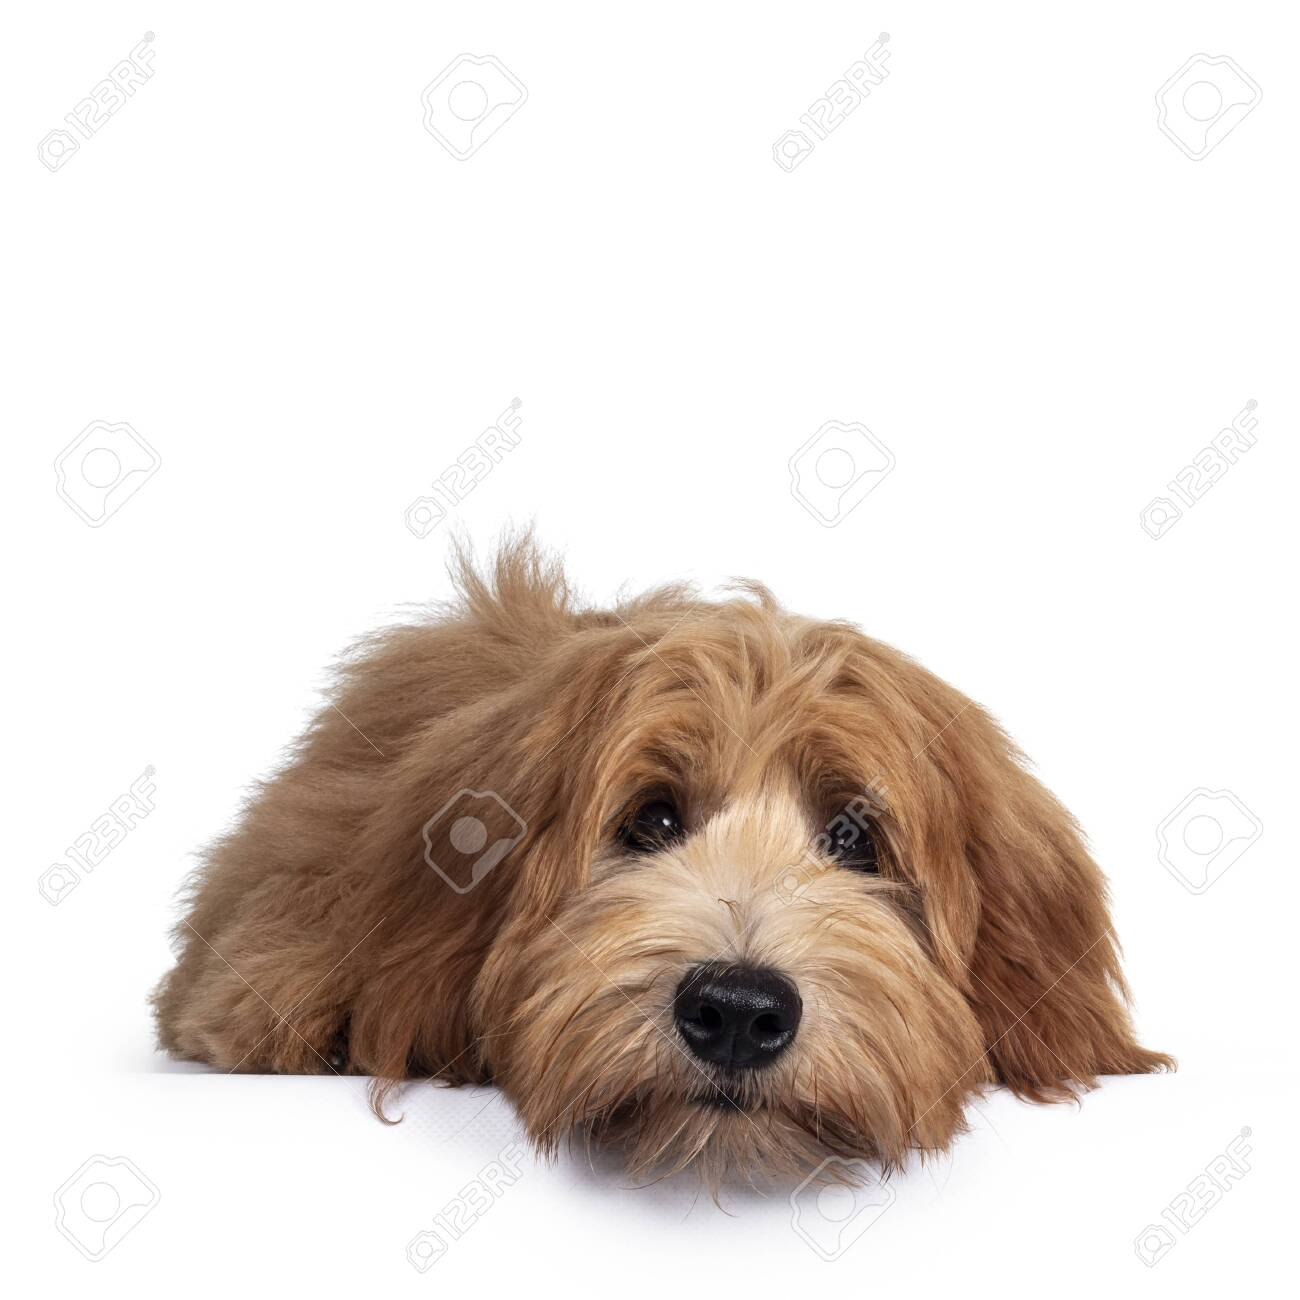 Adorable red / abricot Labradoodle dog puppy, layingflat face down facing front, looking towards camera with shiny dark eyes. Isolated on white background. Mouth closed, head on floor. - 151671211